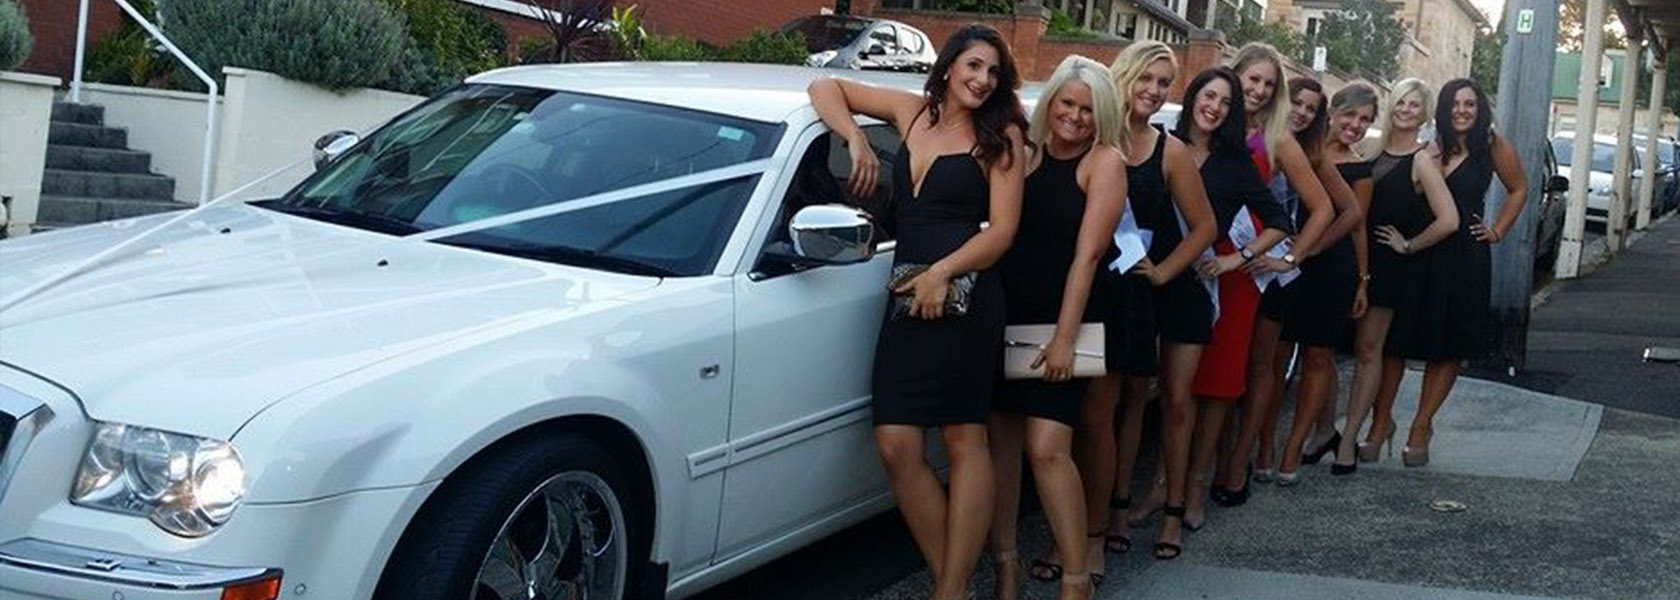 Limo And Party Bus Rentals Wedding Limos And Party Buses Nj